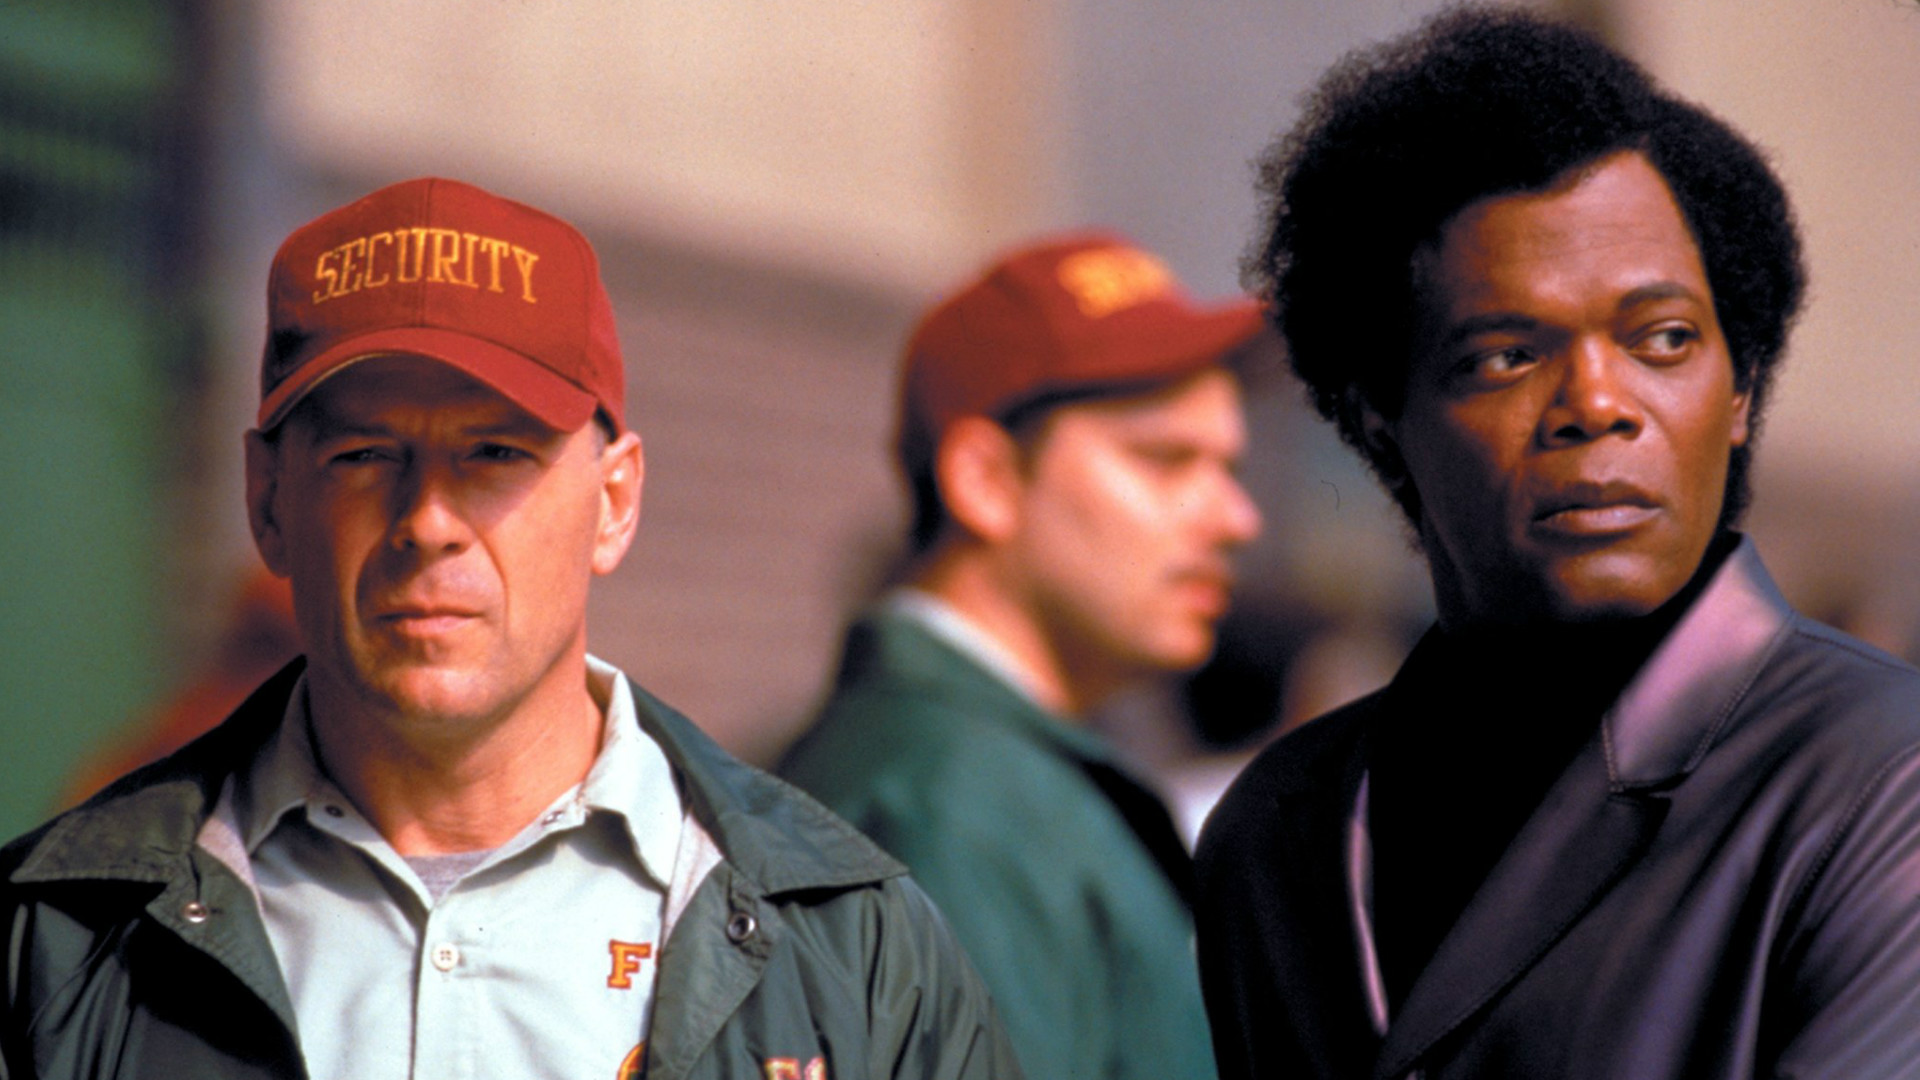 Unbreakable starring Bruce Willis and Samuel L. Jackson.